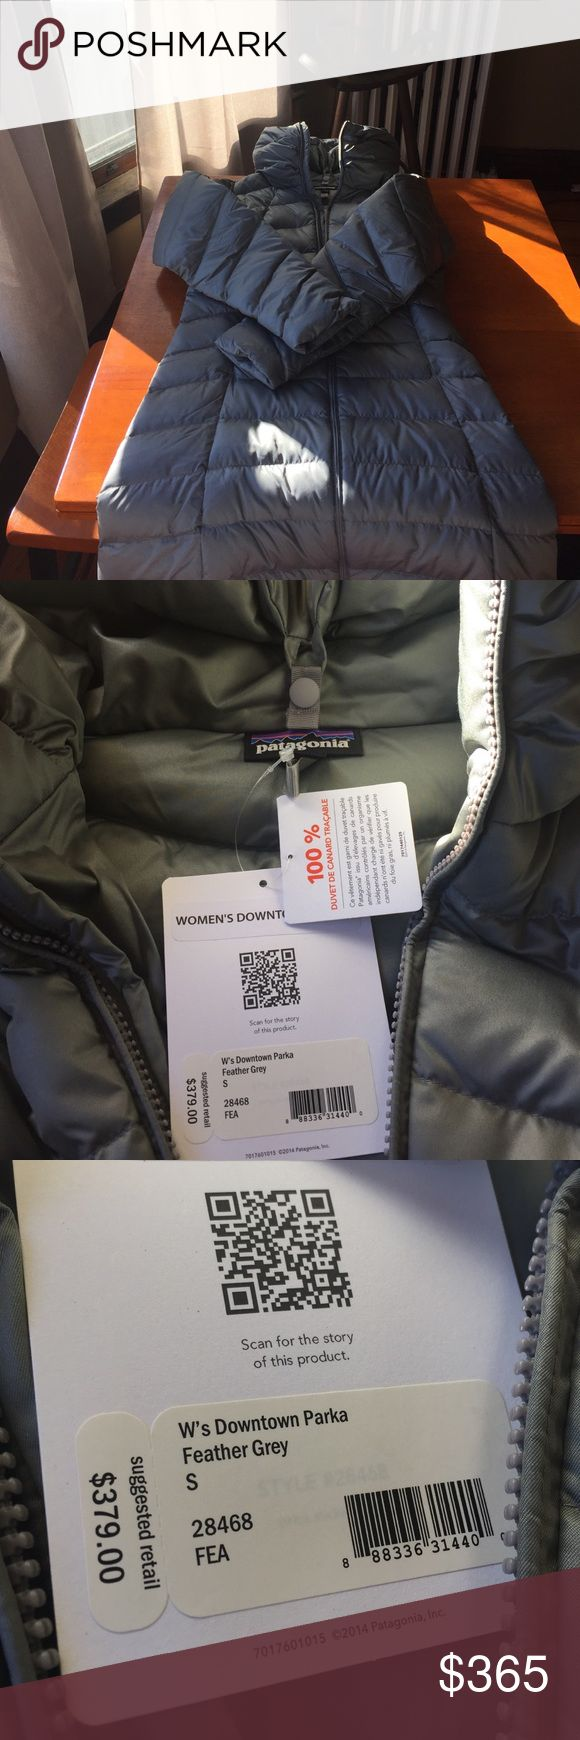 "Grey Patagonia parka Grey women's downtown parka, brand new, never worn, tags attached. This is a long parka, I am 5'4"" and it goes just past my knees. Very warm, down filled jacket perfect for winter! Patagonia Jackets & Coats Puffers"